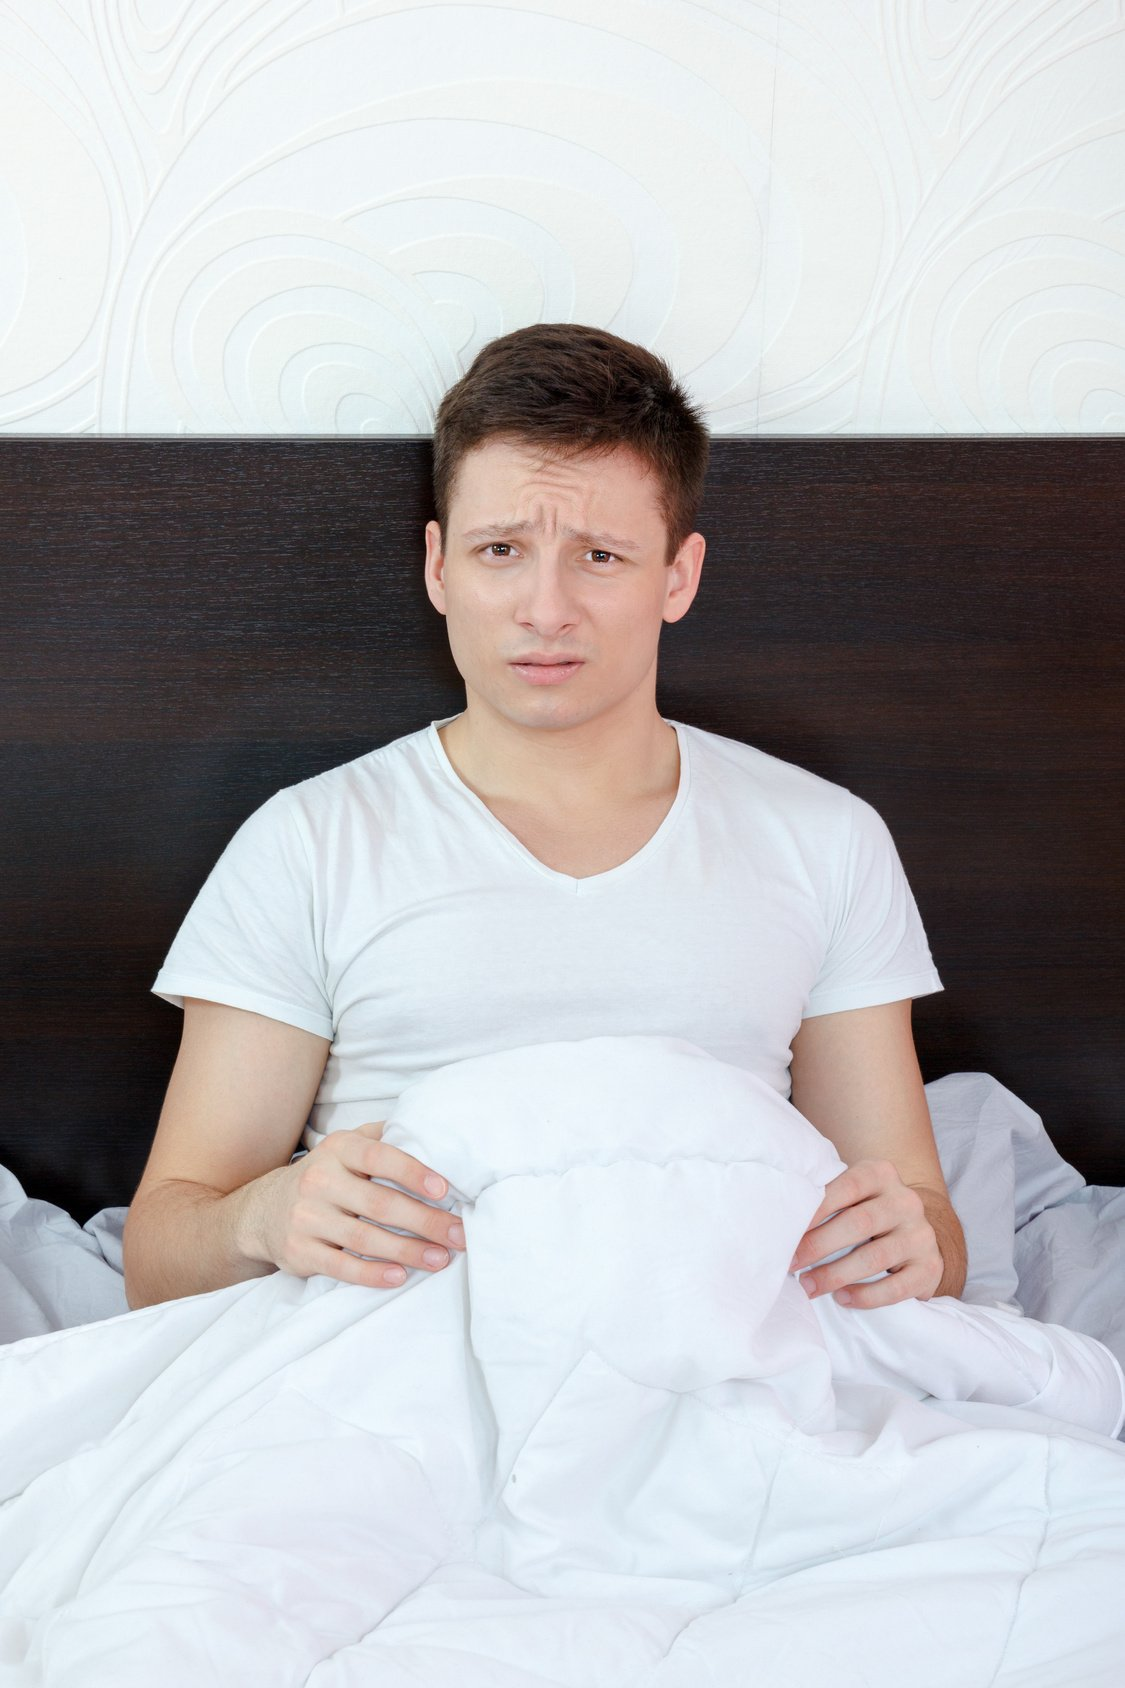 Why do I wake up with an erection in the morning? - My